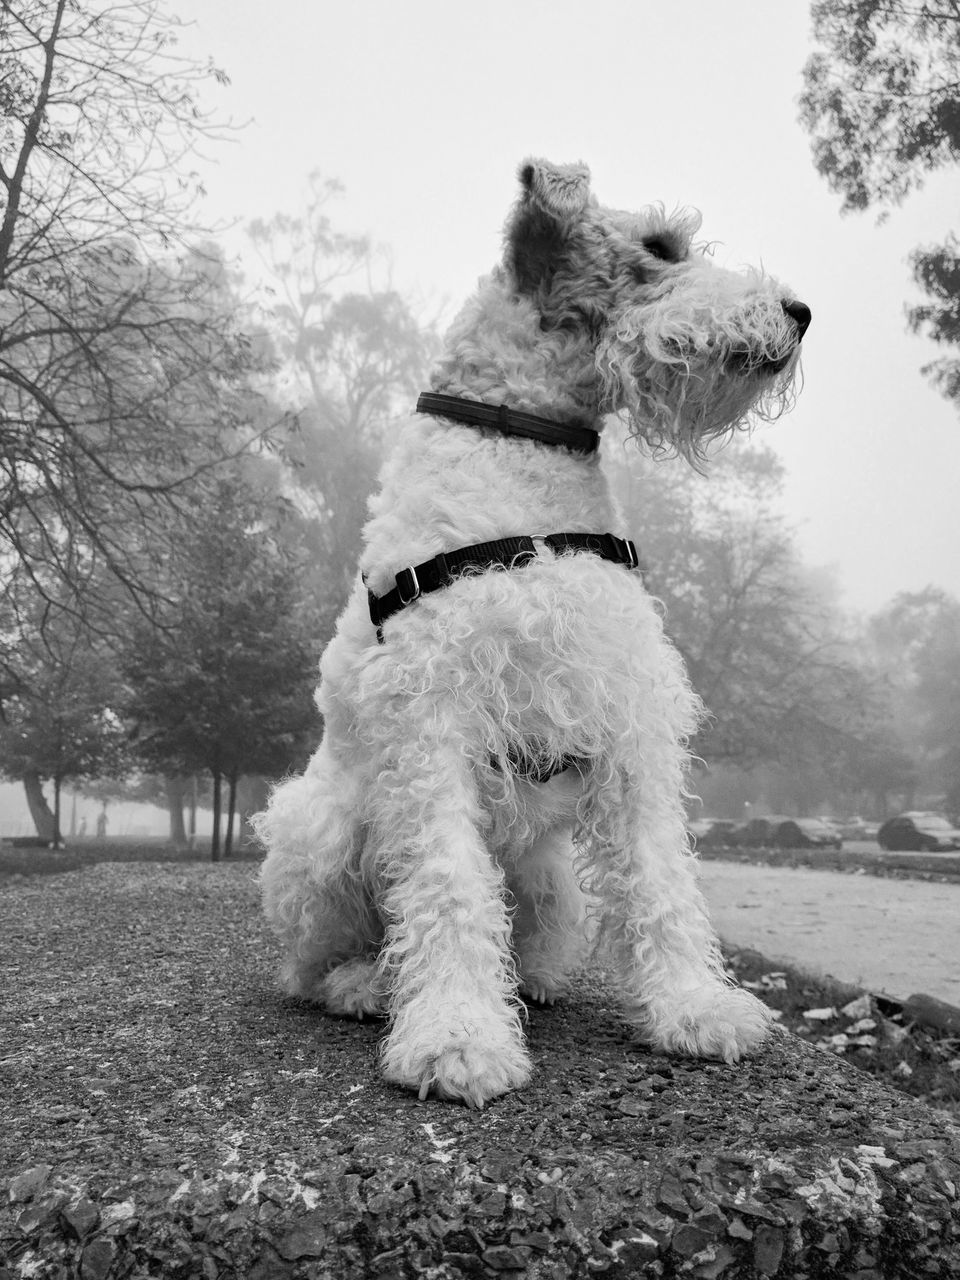 dog, pets, domestic animals, animal themes, mammal, one animal, field, tree, day, outdoors, grass, sky, no people, west highland white terrier, nature